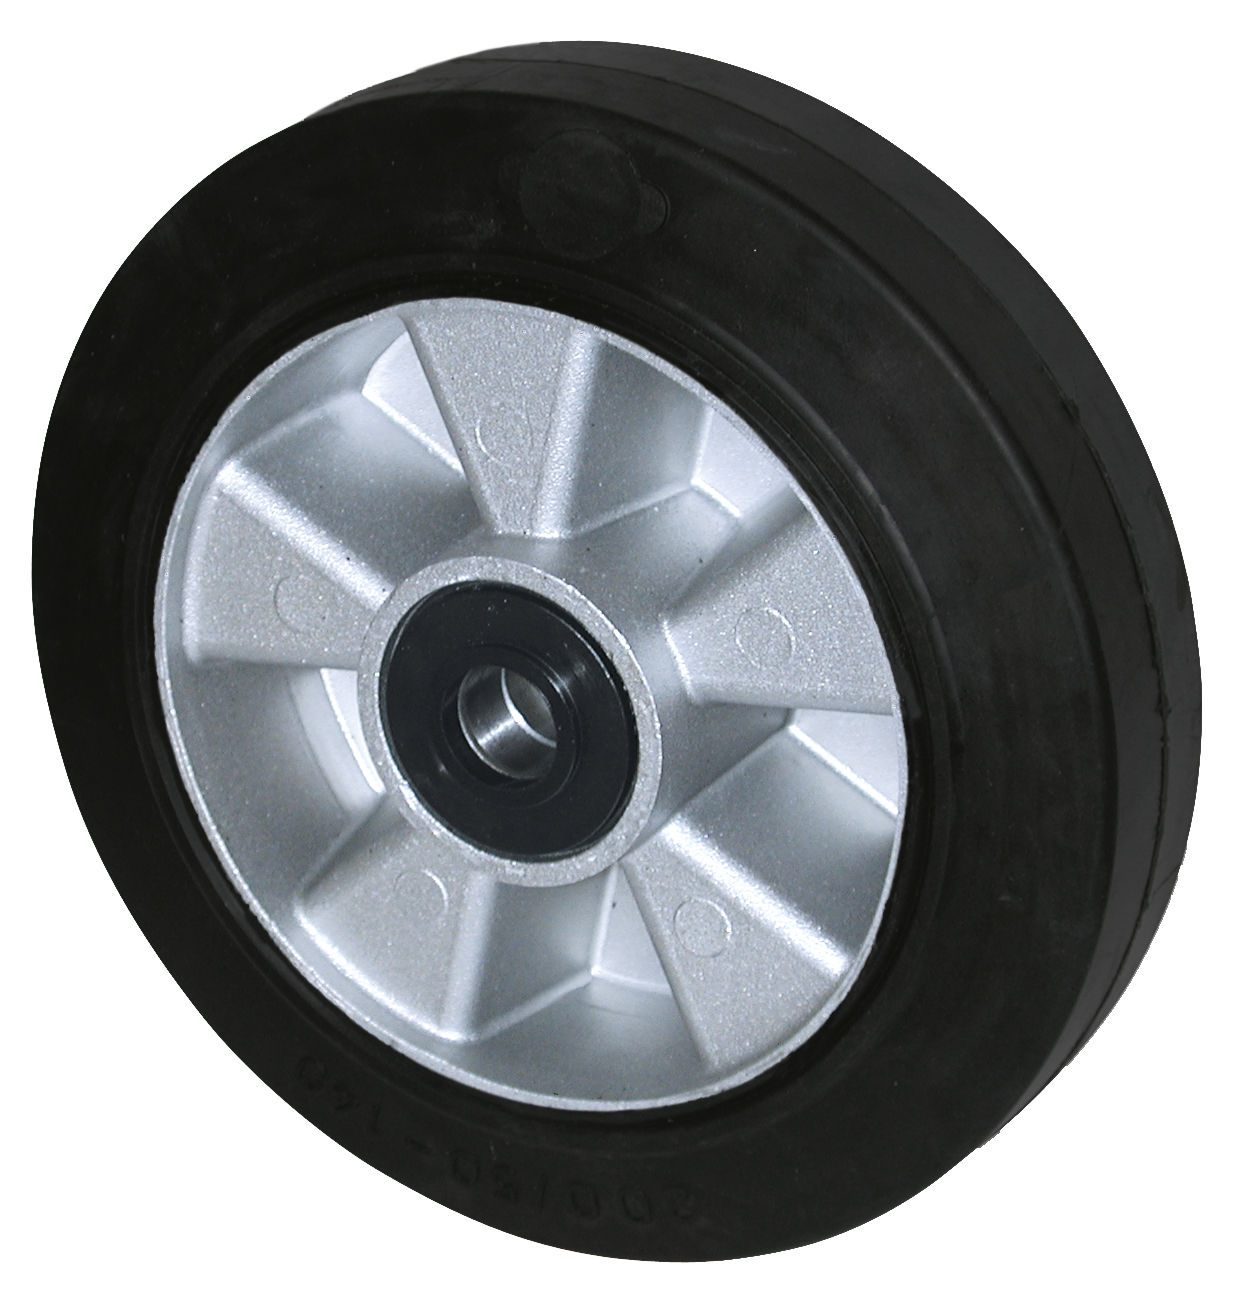 Solid rubber wheel model CR